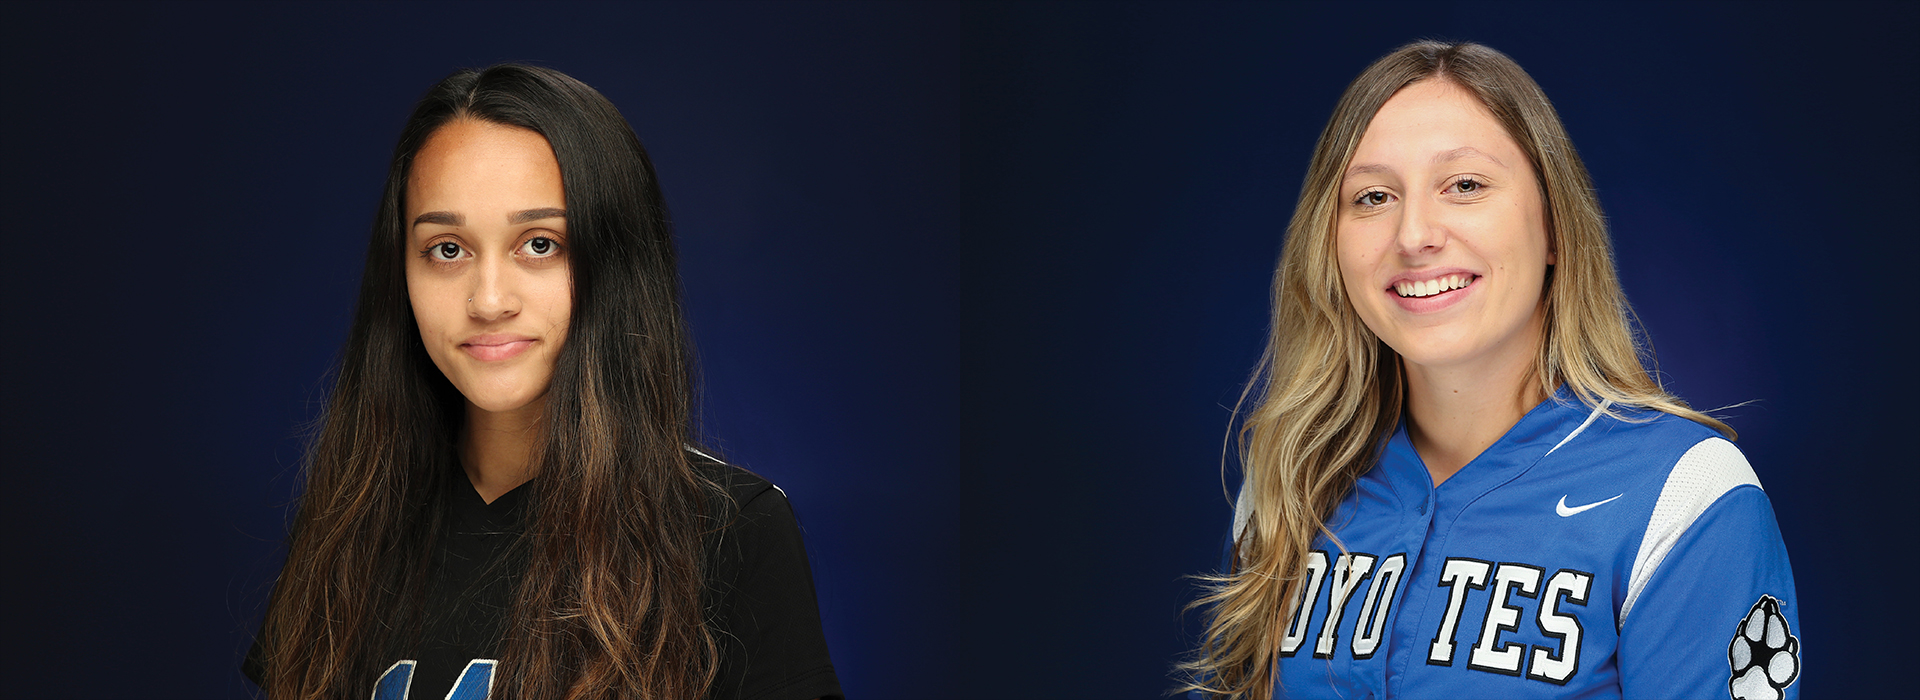 Two newly graduated CSUSB student-athletes nominated for 2019 NCAA Woman of the Year